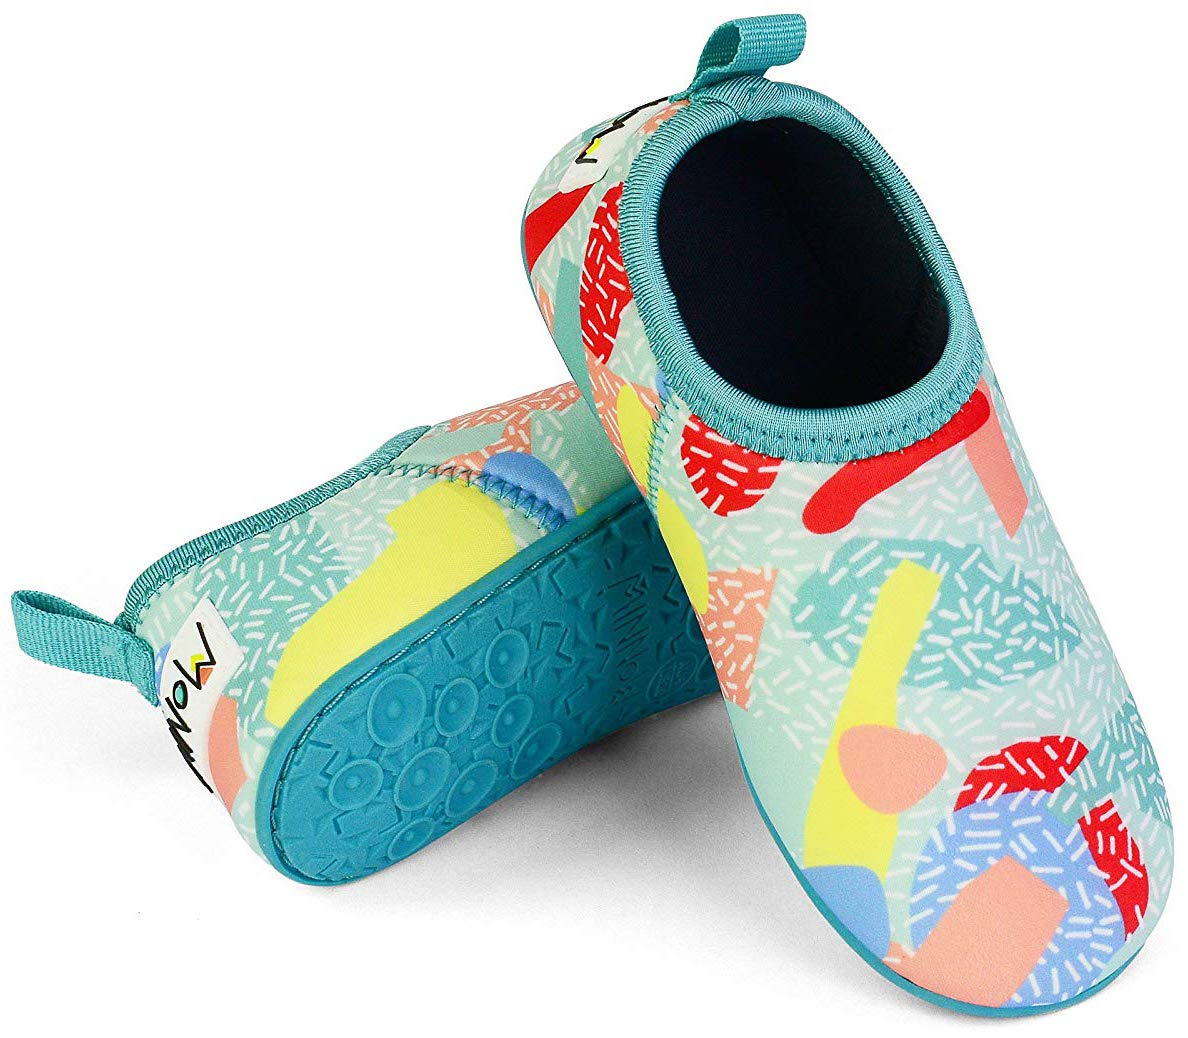 Minnow Designs Kids Water Shoes Cute Comfortable Snug Fit Beach Aqua Socks with Non Slip Hard Sole for Junior Boys and Girls - 11, Sprinkles